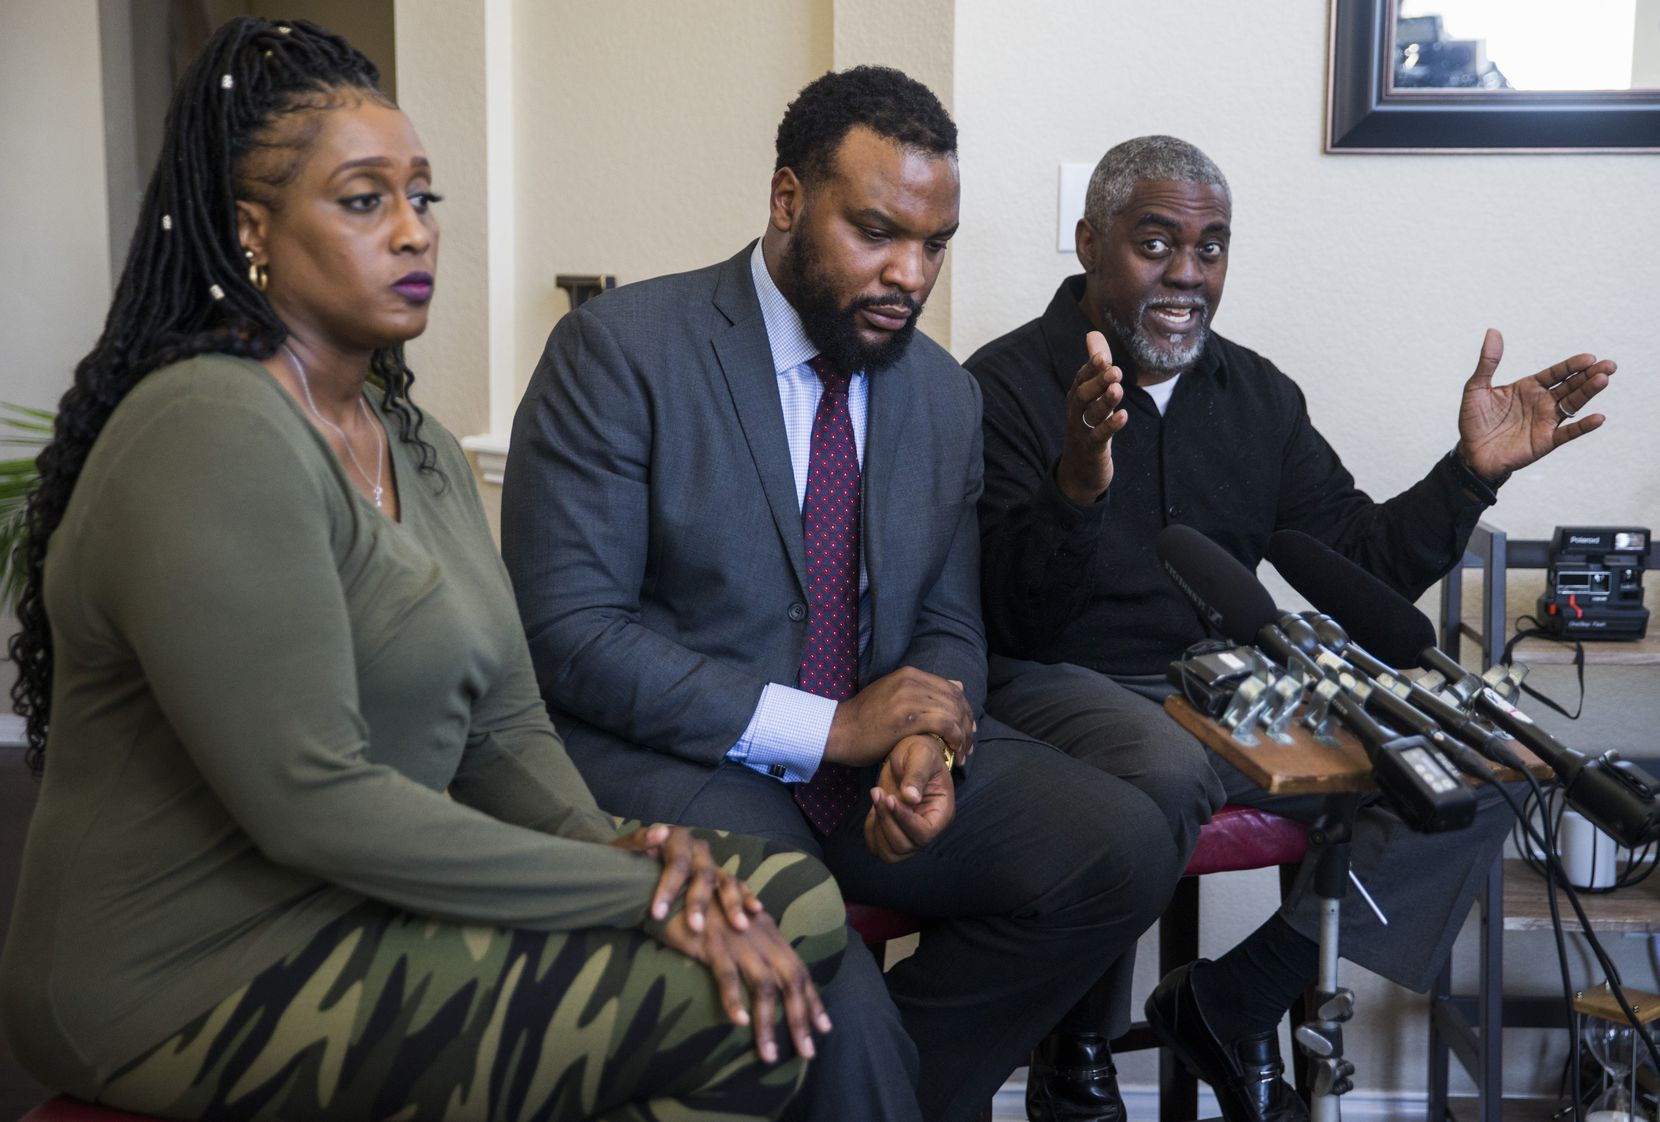 Attorney Lee Merritt (center) and the parents of Darius Tarver, Froncella Reece (left) and Kevin Tarver, speak to reporters at Merritt's home on Friday, March 6, 2020 in McKinney. Tarver, a UNT student was killed by Denton police in January. (Ashley Landis/The Dallas Morning News)